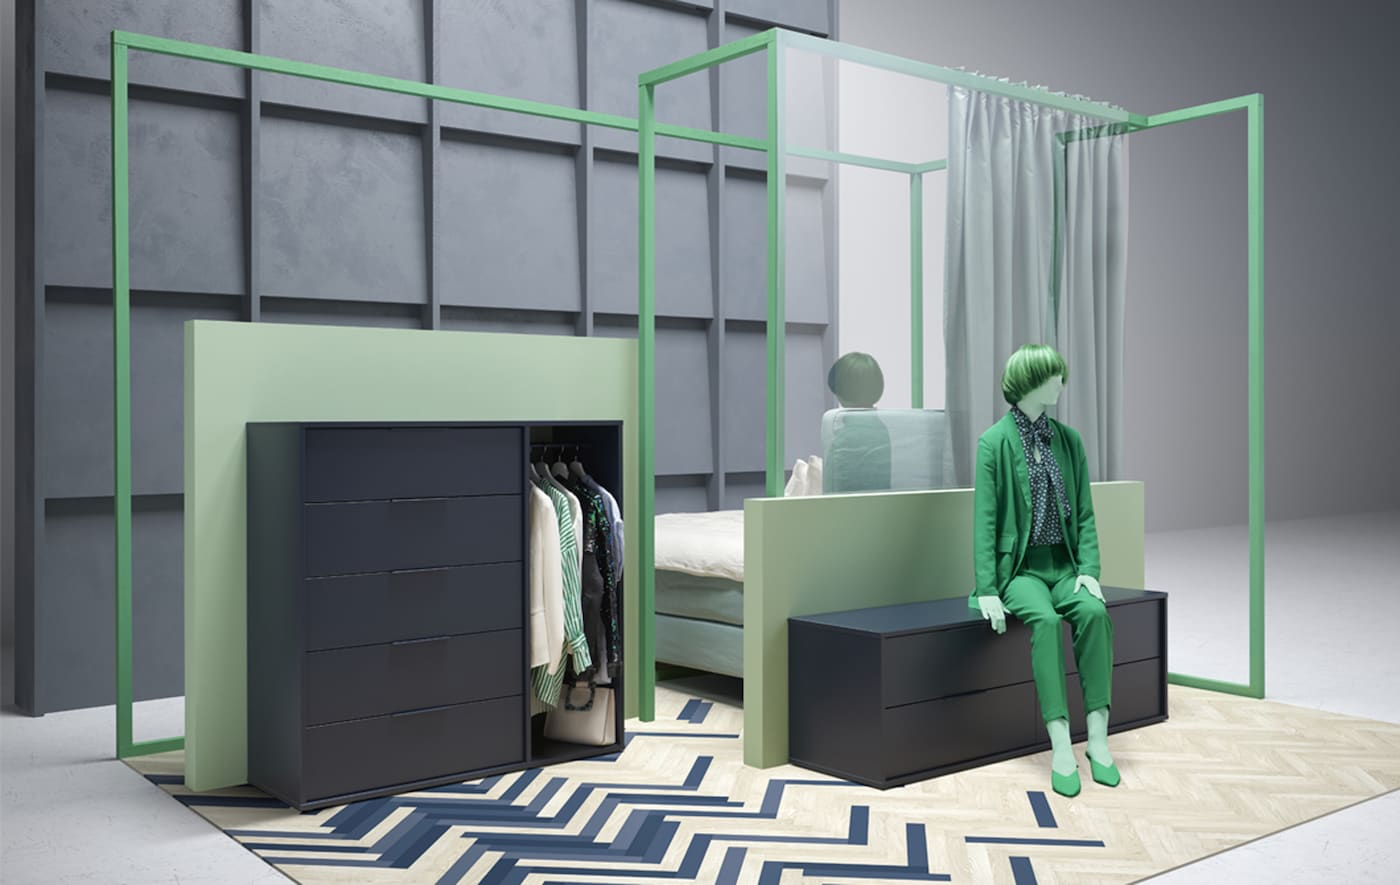 A figure dressed in green sits on a low chest, next to a taller chest with drawers and clothes hanging up.